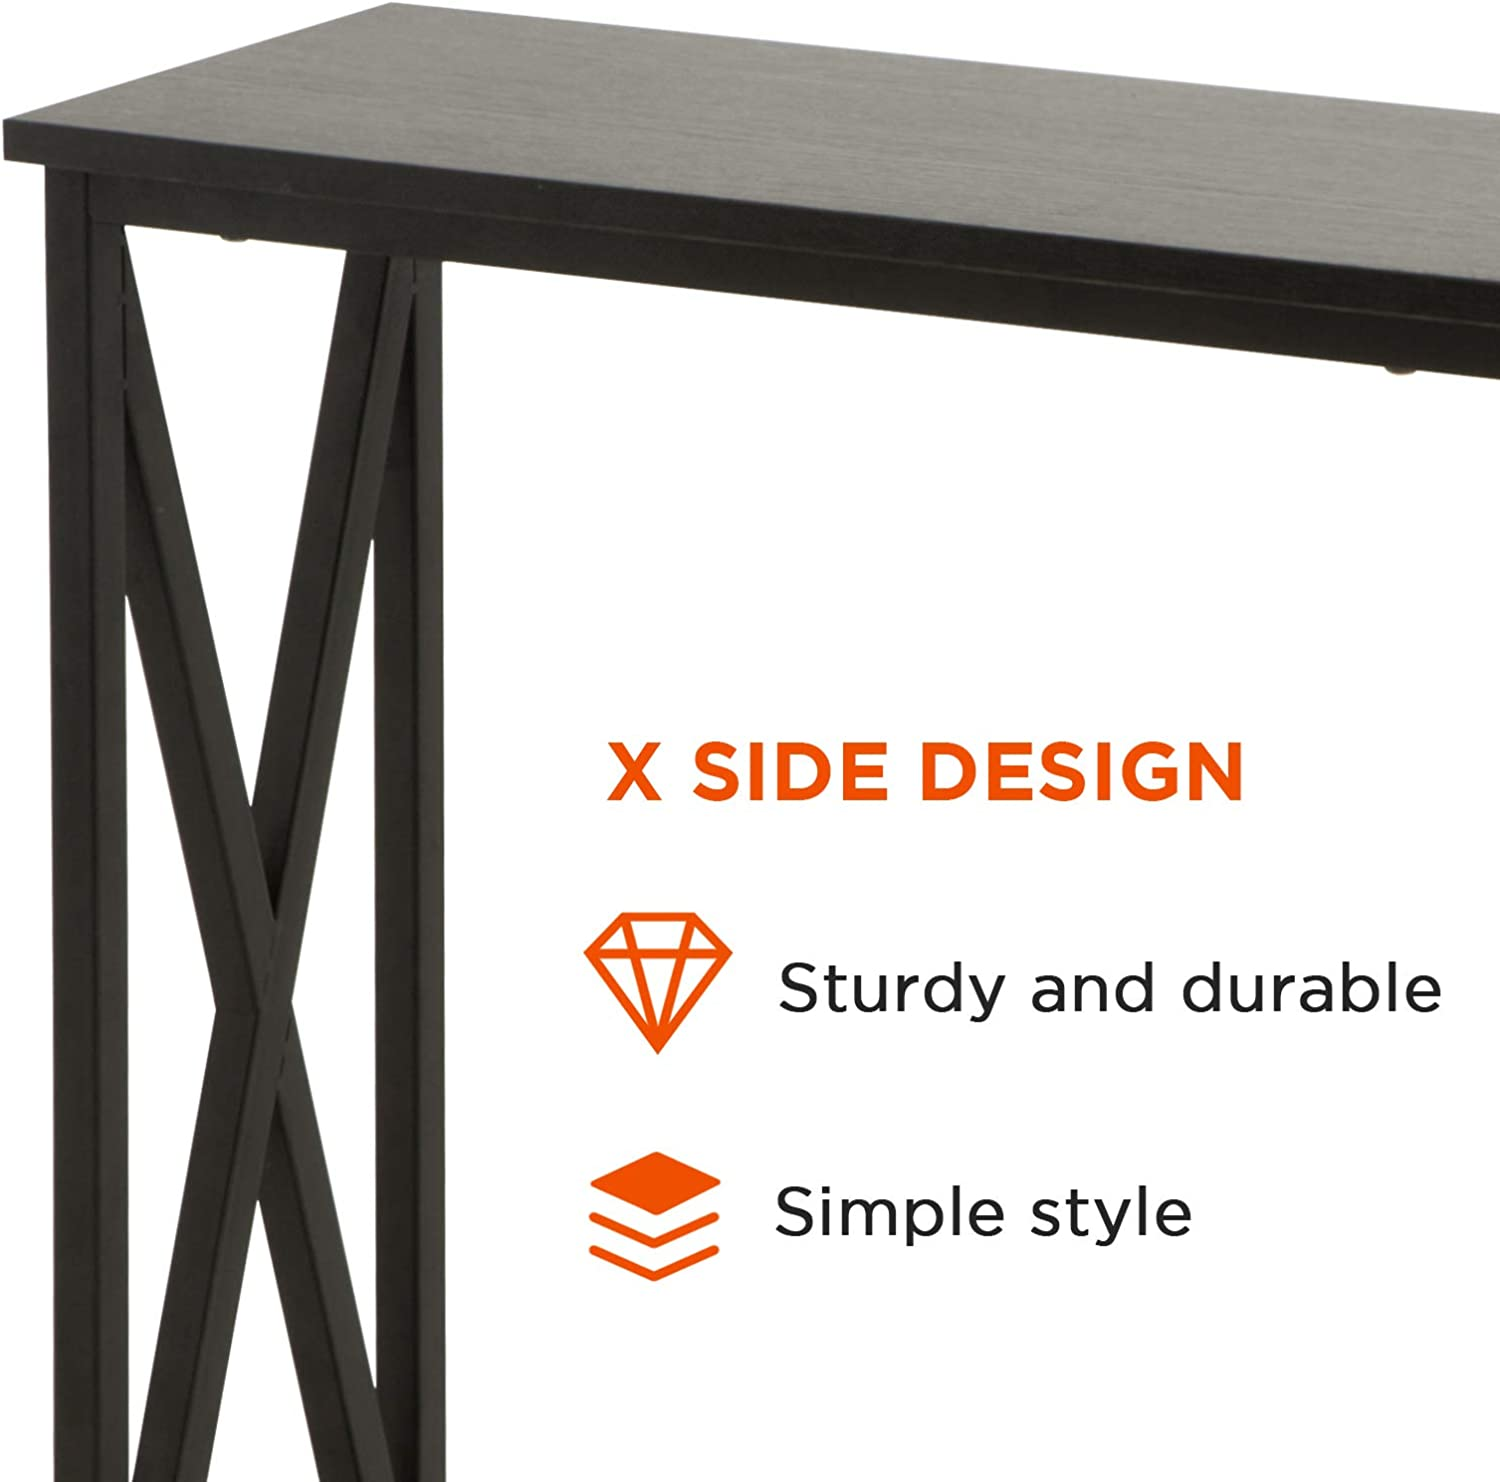 oneinmil Console Table with 2-Tier Storage Shelf , X Frame Sofa Table for Entryway Living Room Hallway,Black